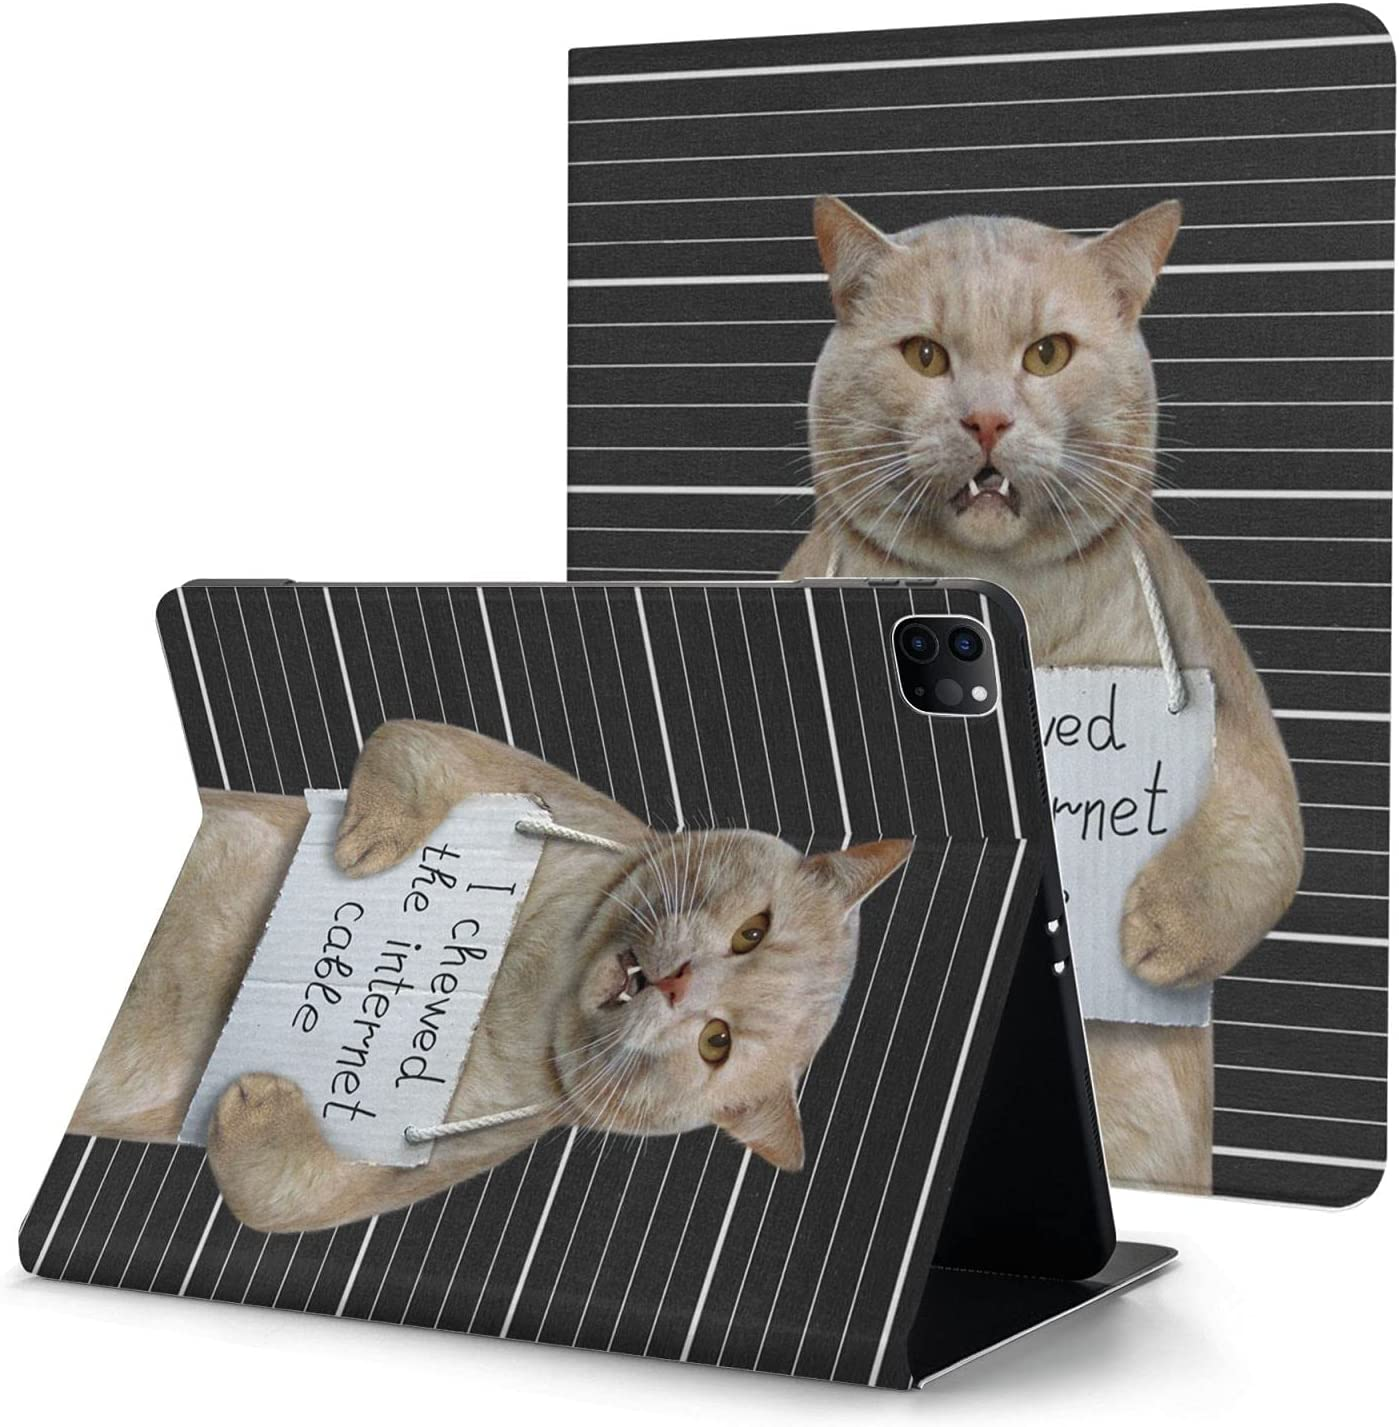 New Ipad Opening large release sale Pro 2020-11 Inches 2021new shipping free shipping Holder Built-in Pencil Cat Printing